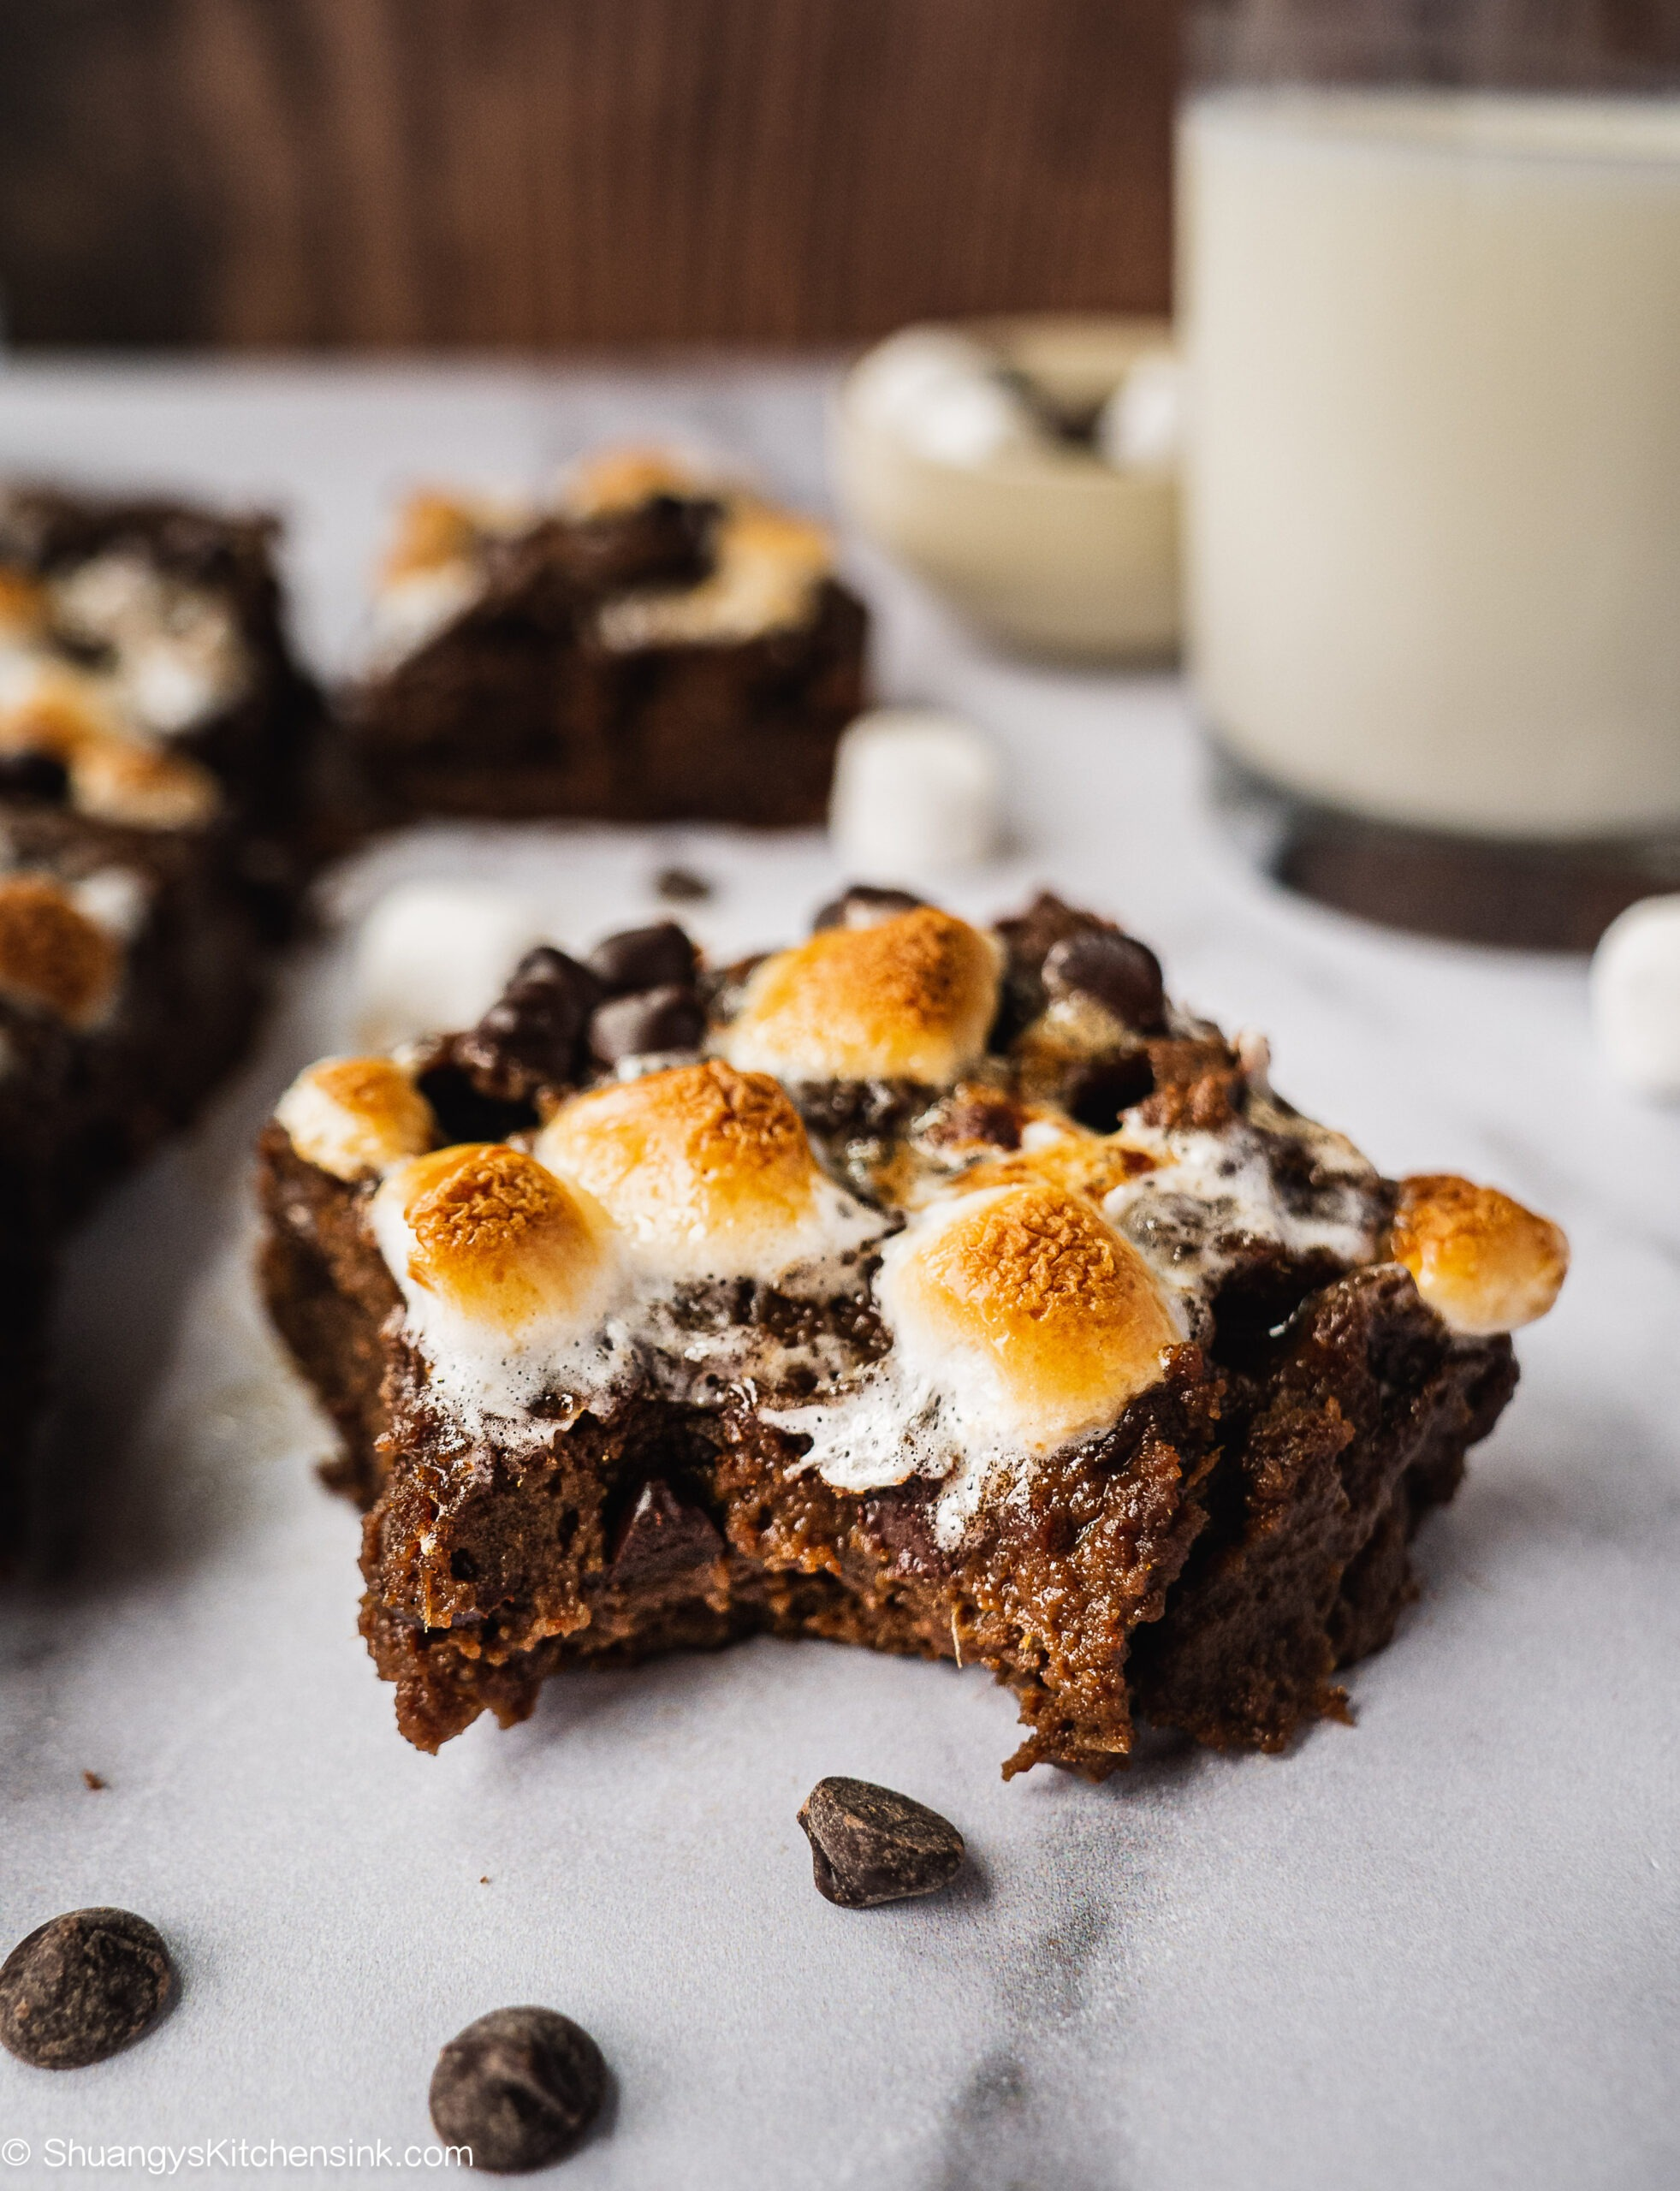 A piece of hot chocolate brownie topped with caramelized marshmallows. There is a glass of milk in the background.